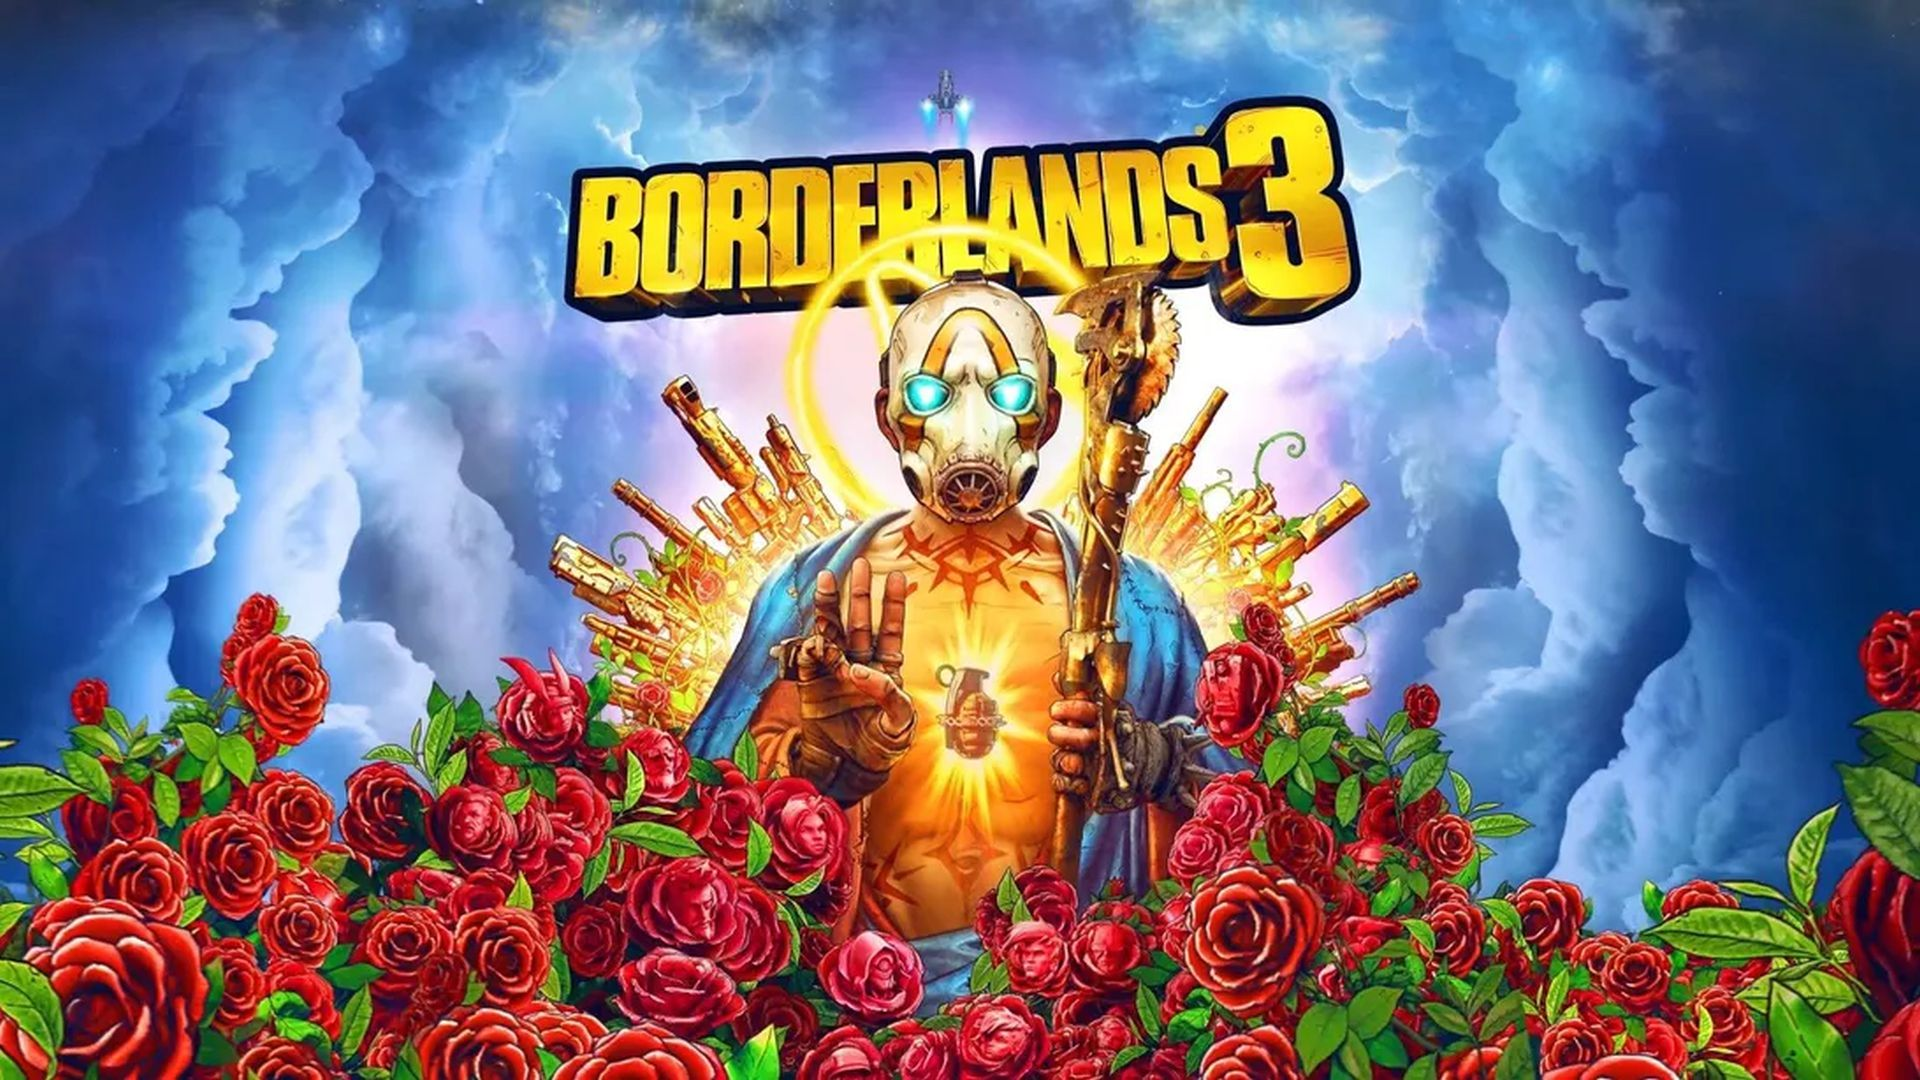 Epic's Borderlands 3 exclusivity deal cost $146 million